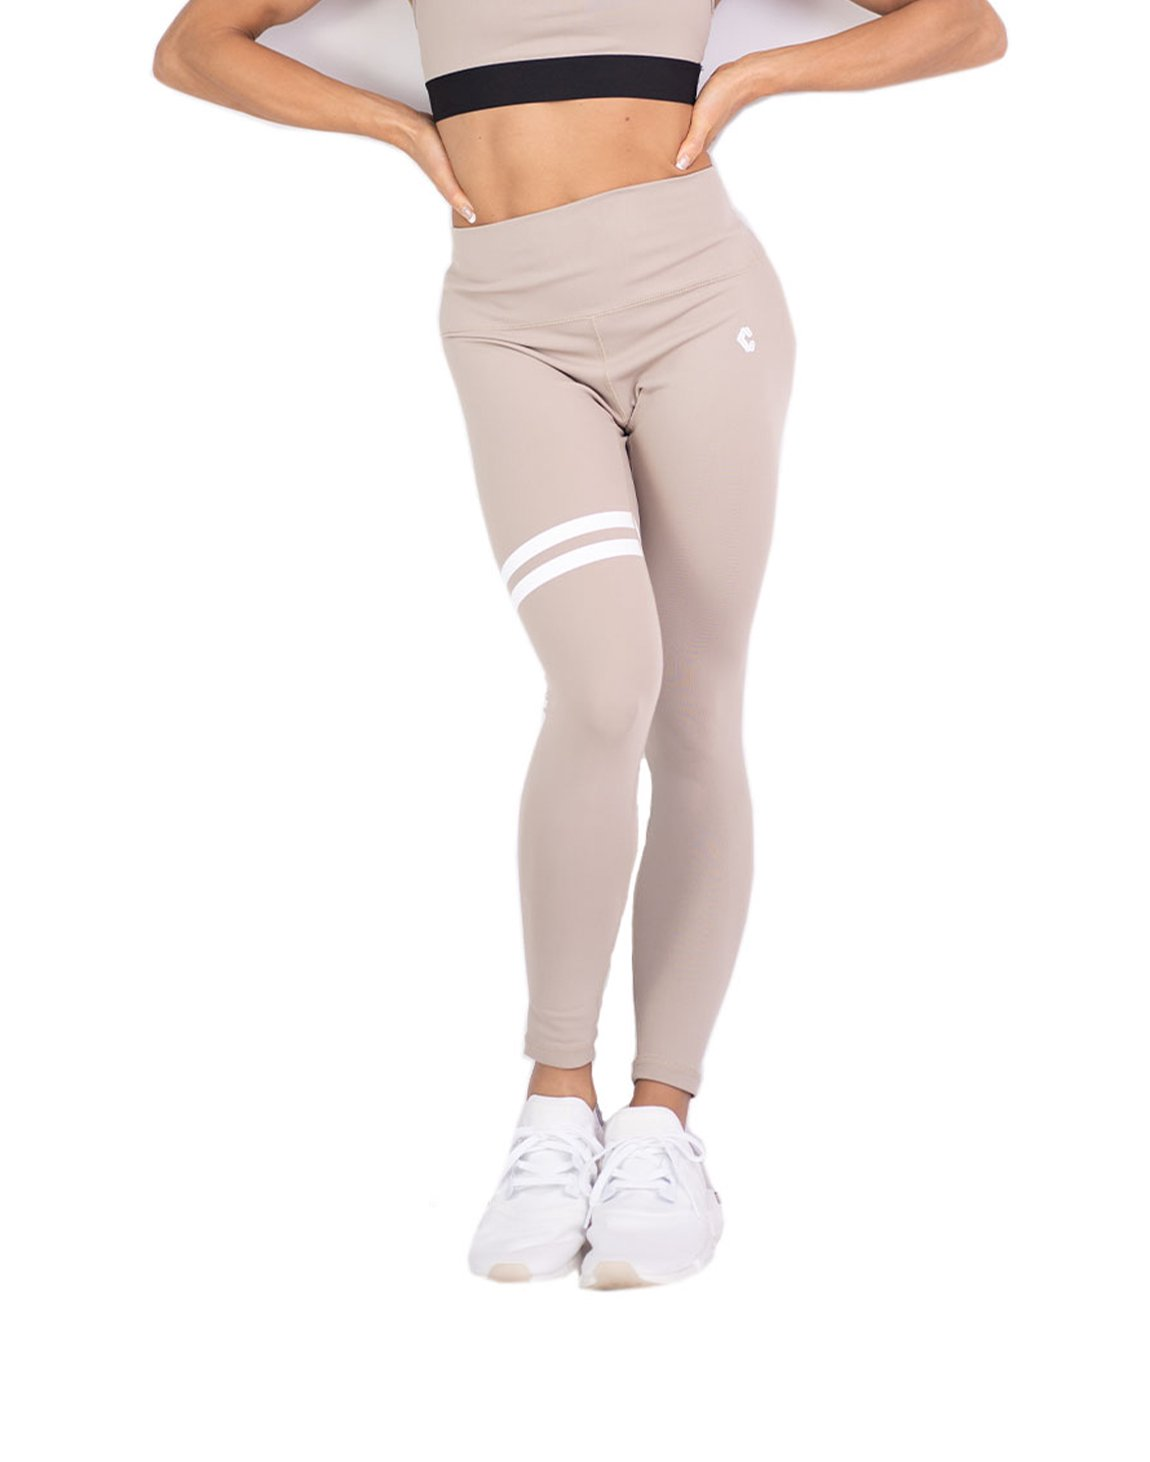 <img class='new_mark_img1' src='https://img.shop-pro.jp/img/new/icons1.gif' style='border:none;display:inline;margin:0px;padding:0px;width:auto;' />CRONOS 2LINE LEGGINS  BEIGE